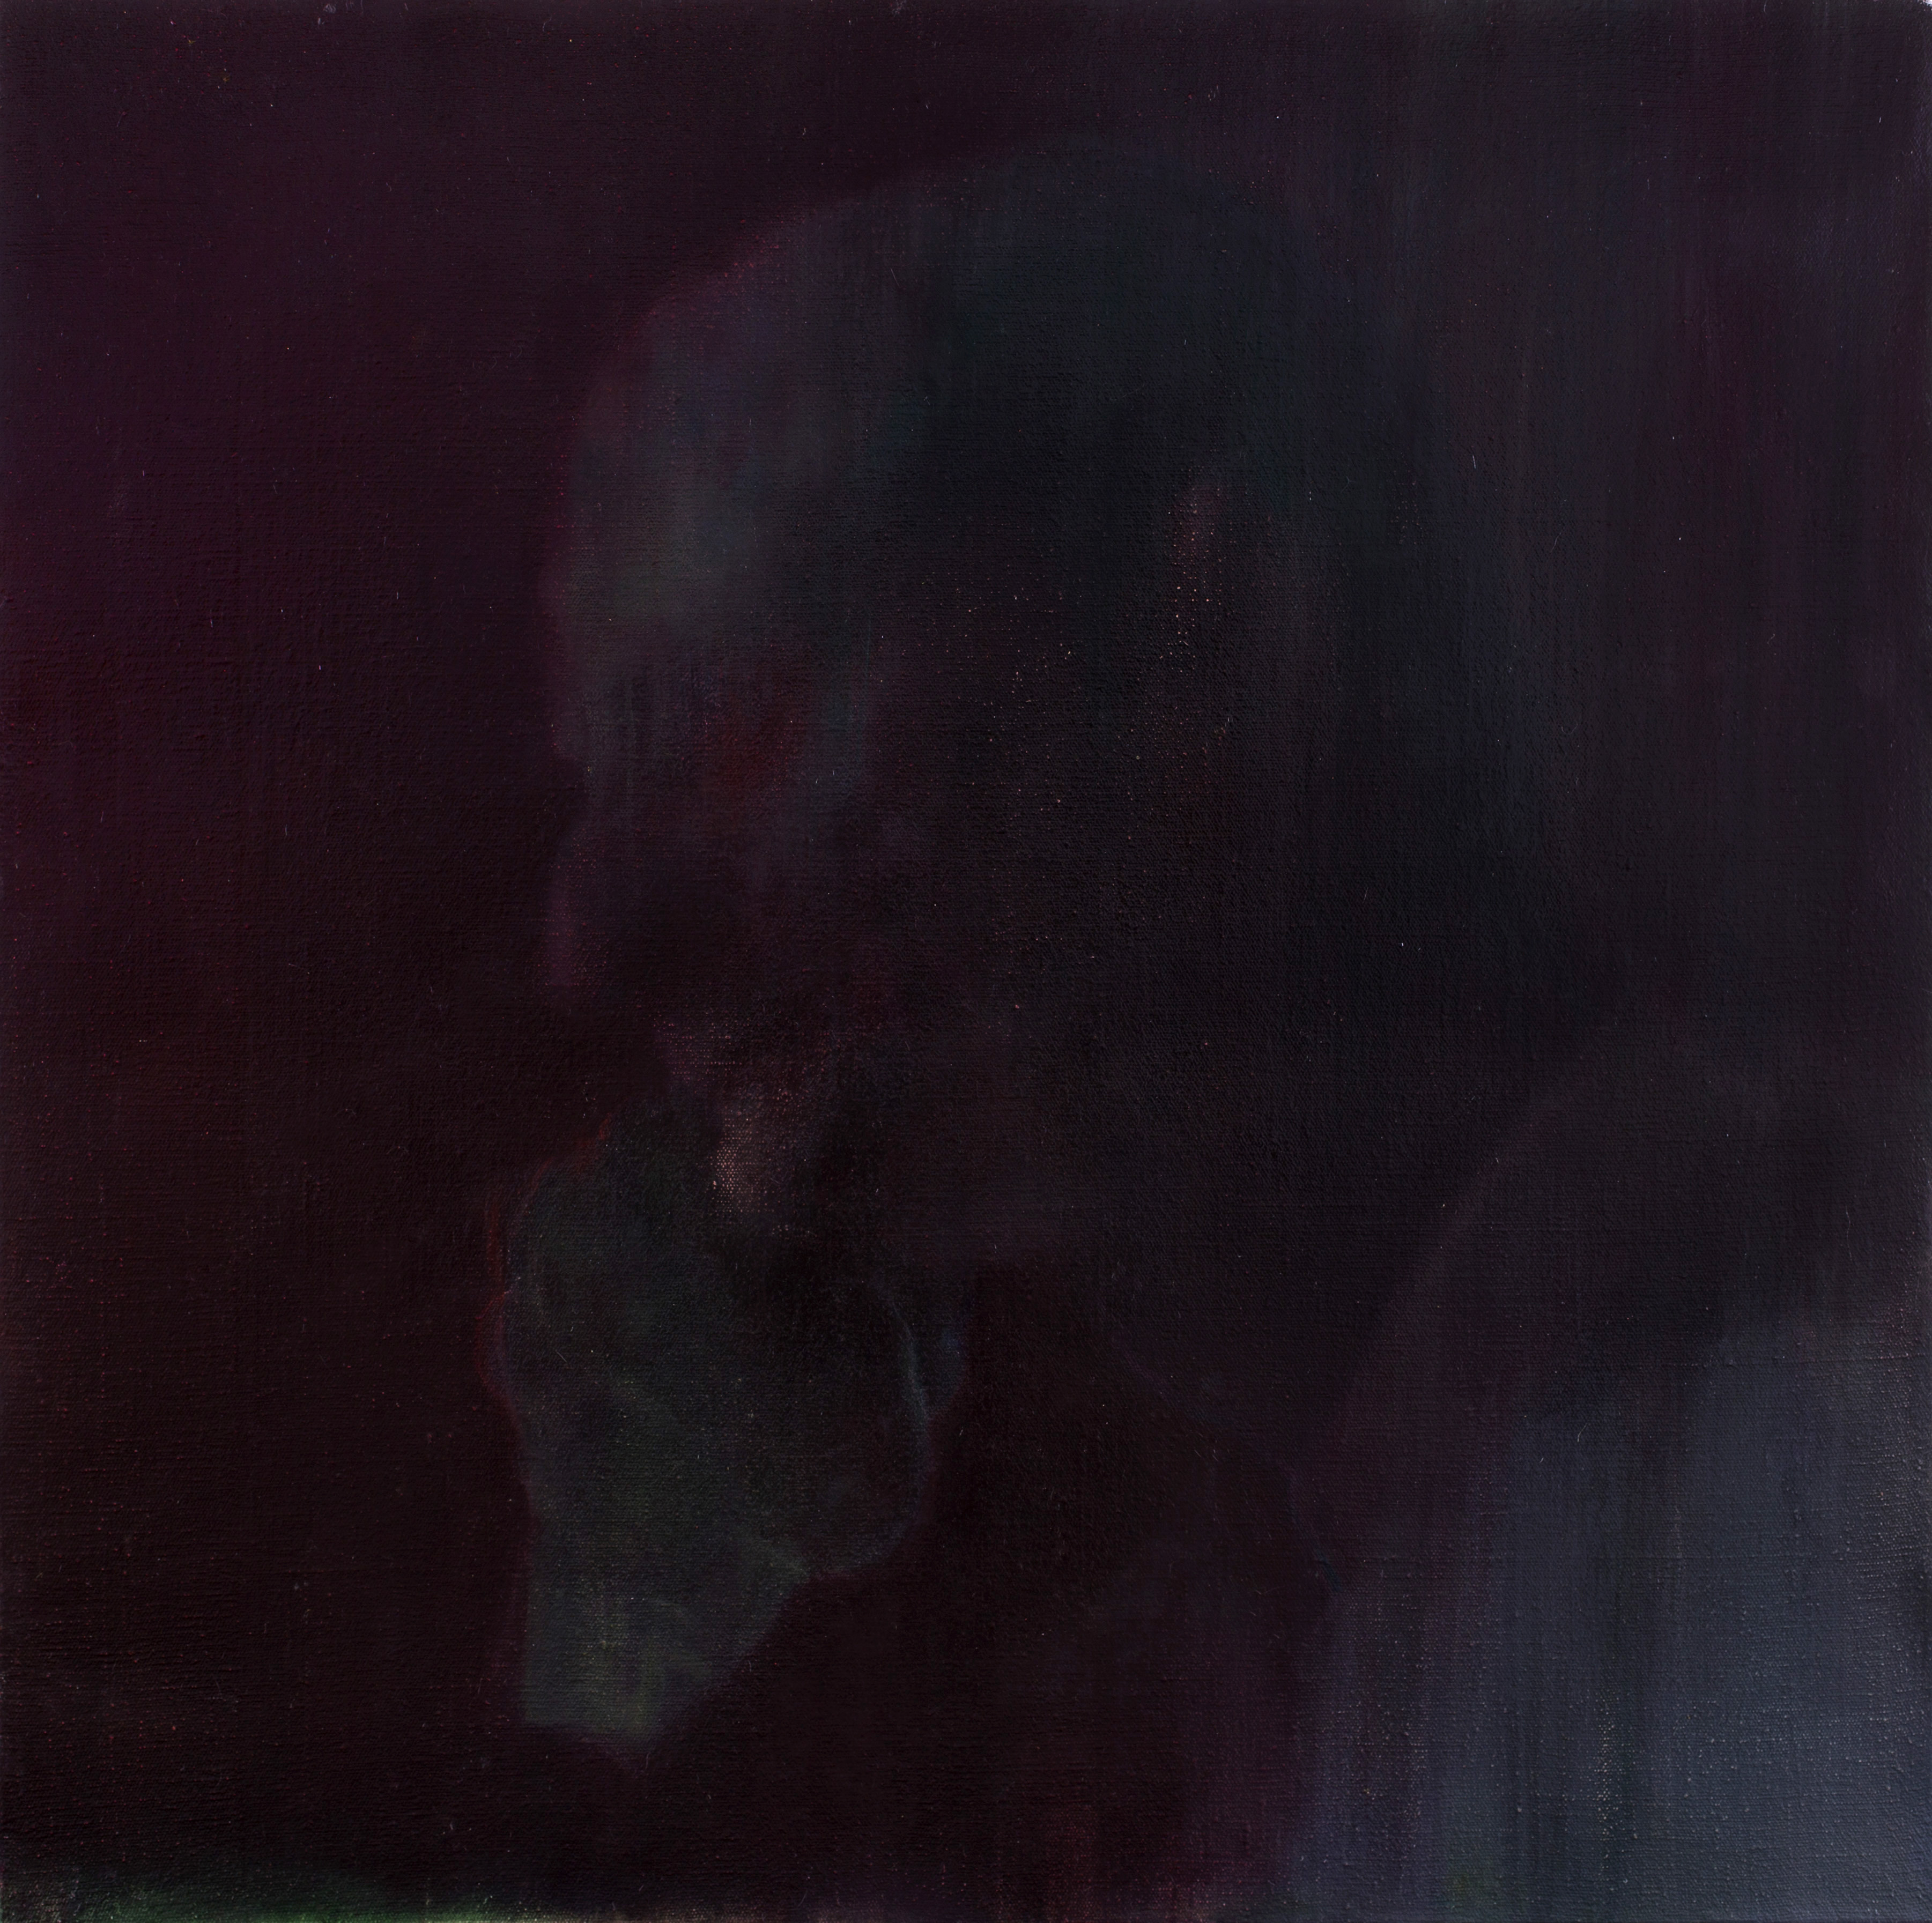 坏人和洋人之四 120x120cm oil on canvas 2015